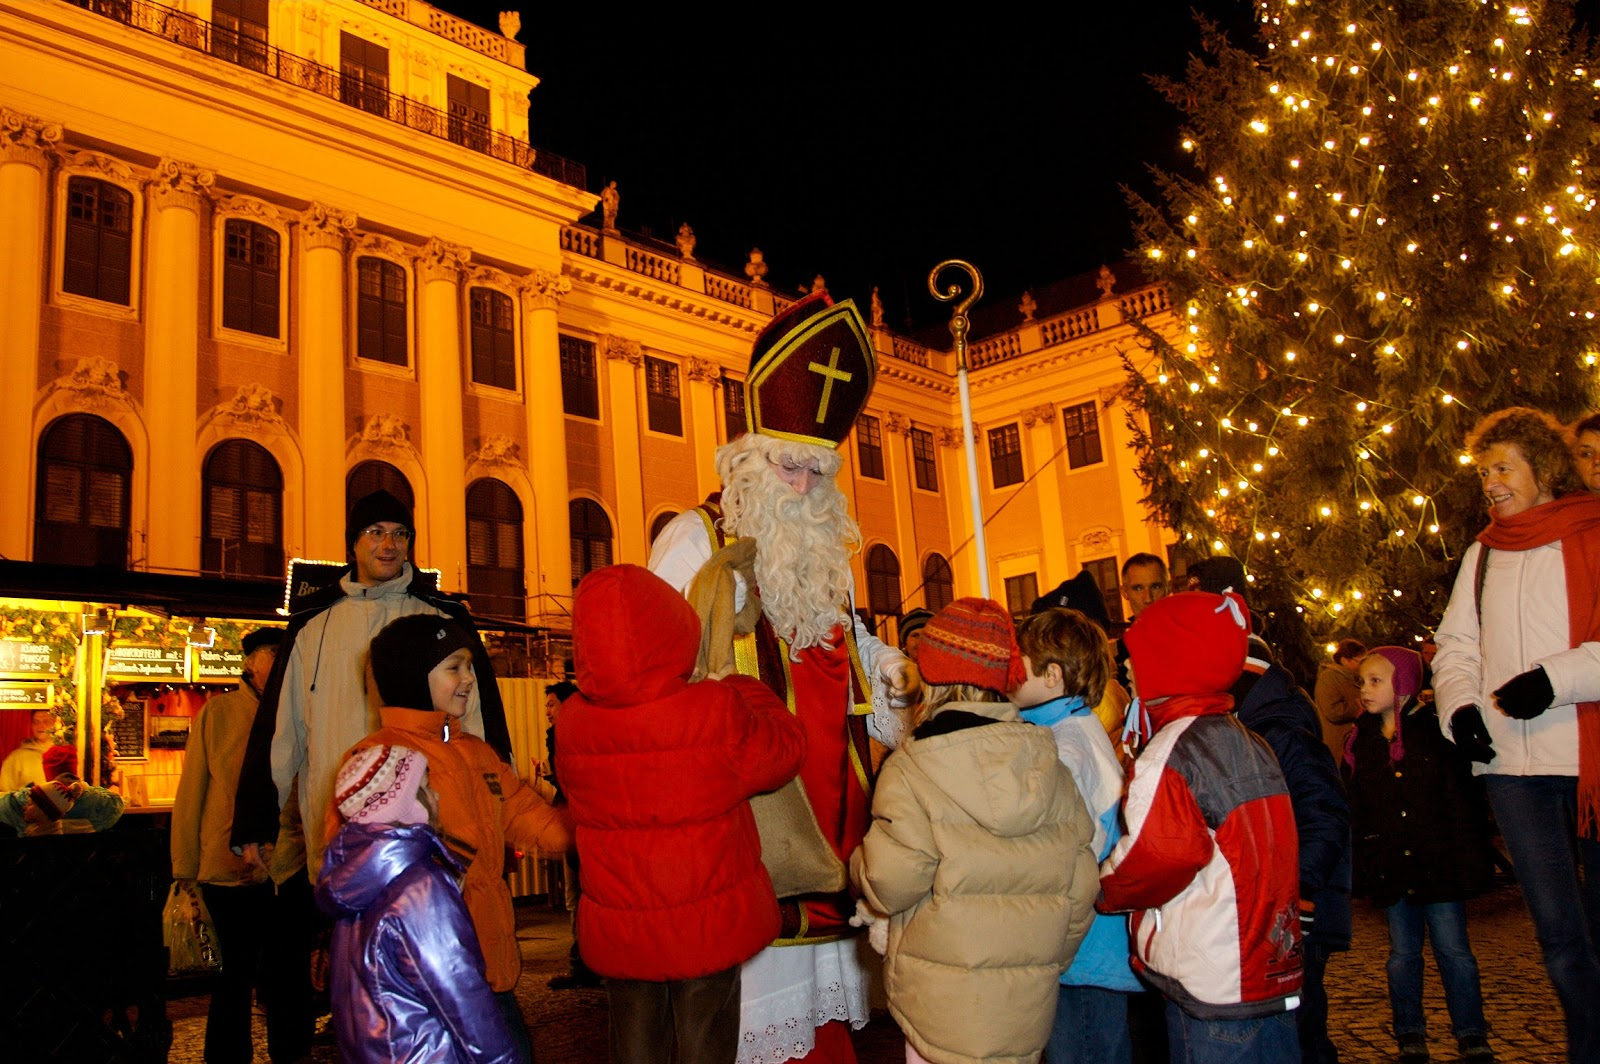 Saint Nicholas or Sinterklaas makes an appearance at the Schönbrunn Palace Christmas Market. Photo: Courtesy of Austria Tourism-©Gerhard Fally. Unauthorized use is prohibited.